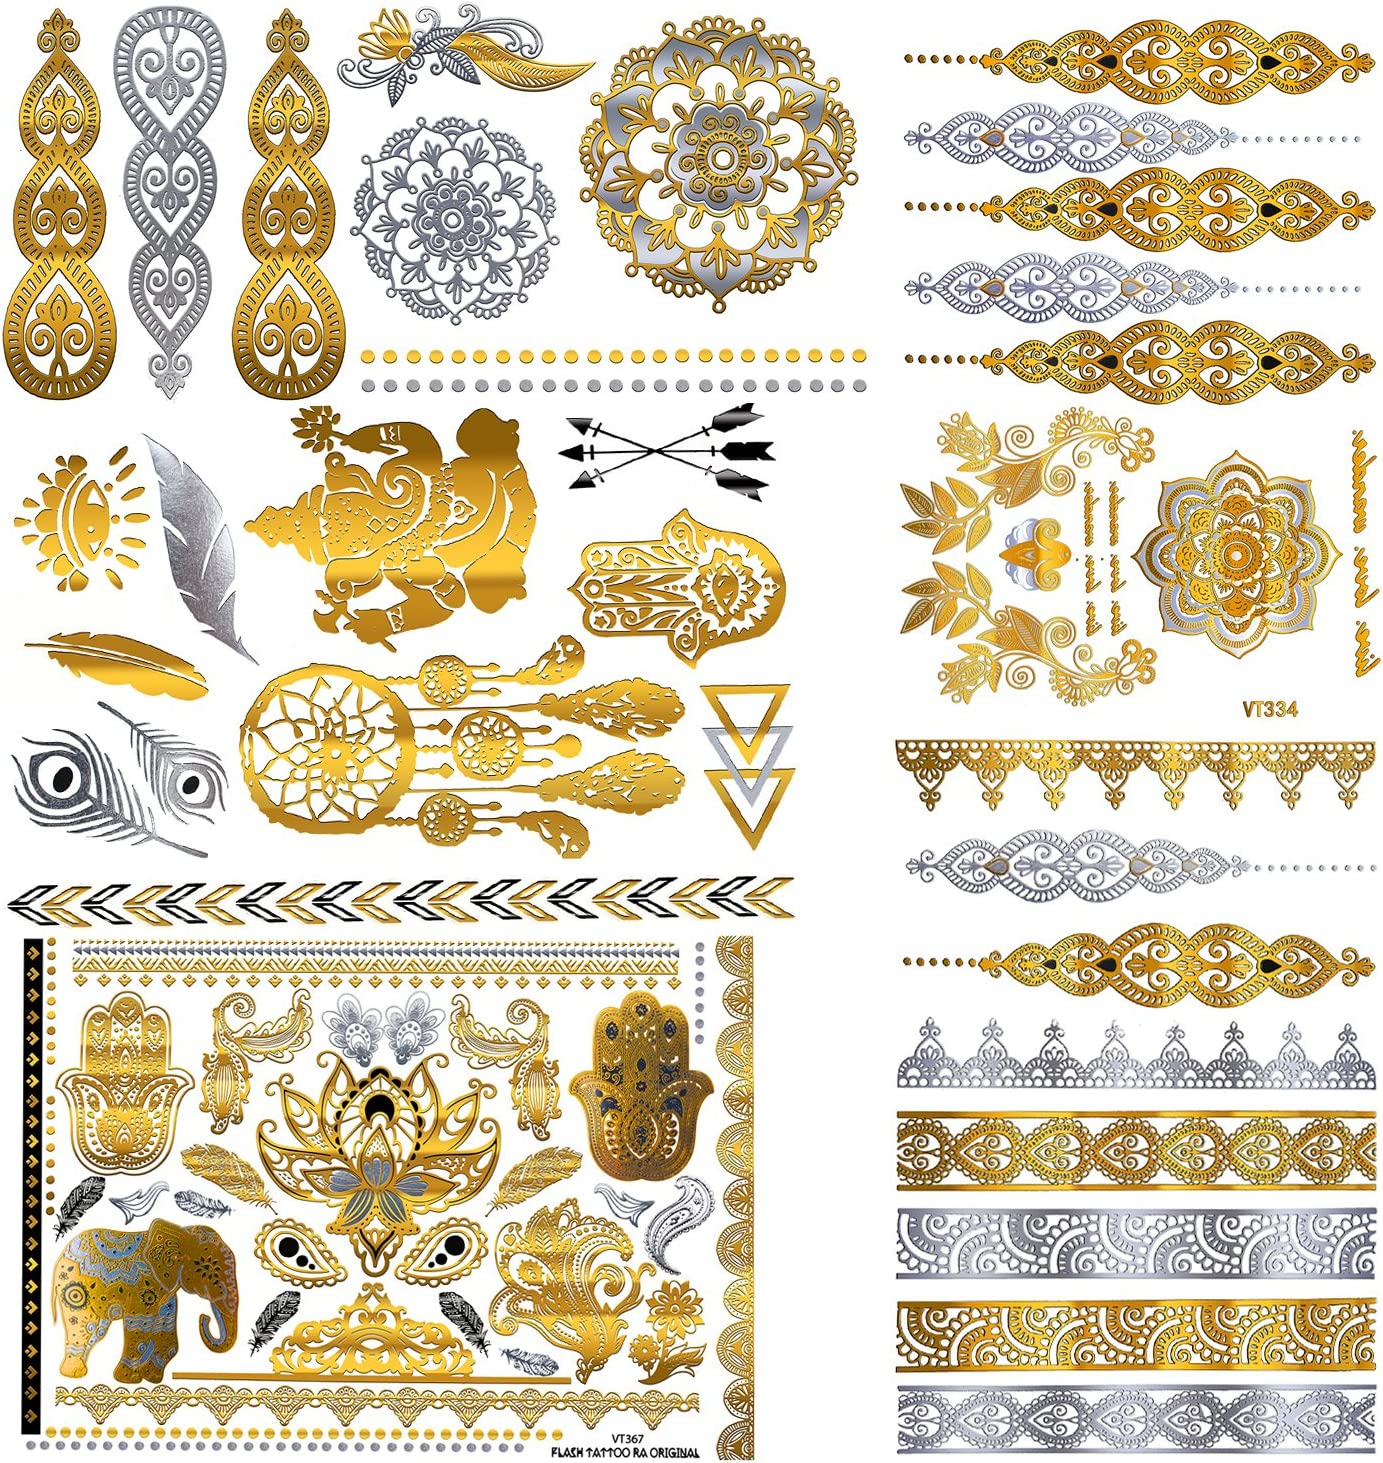 5 Sheets Fashion Body Art Stickers Removable Waterproof Temporary Tattoo Patten Type Wings Letters Cats Totem Cardiogram Hot Amazon Co Uk Diy Tools